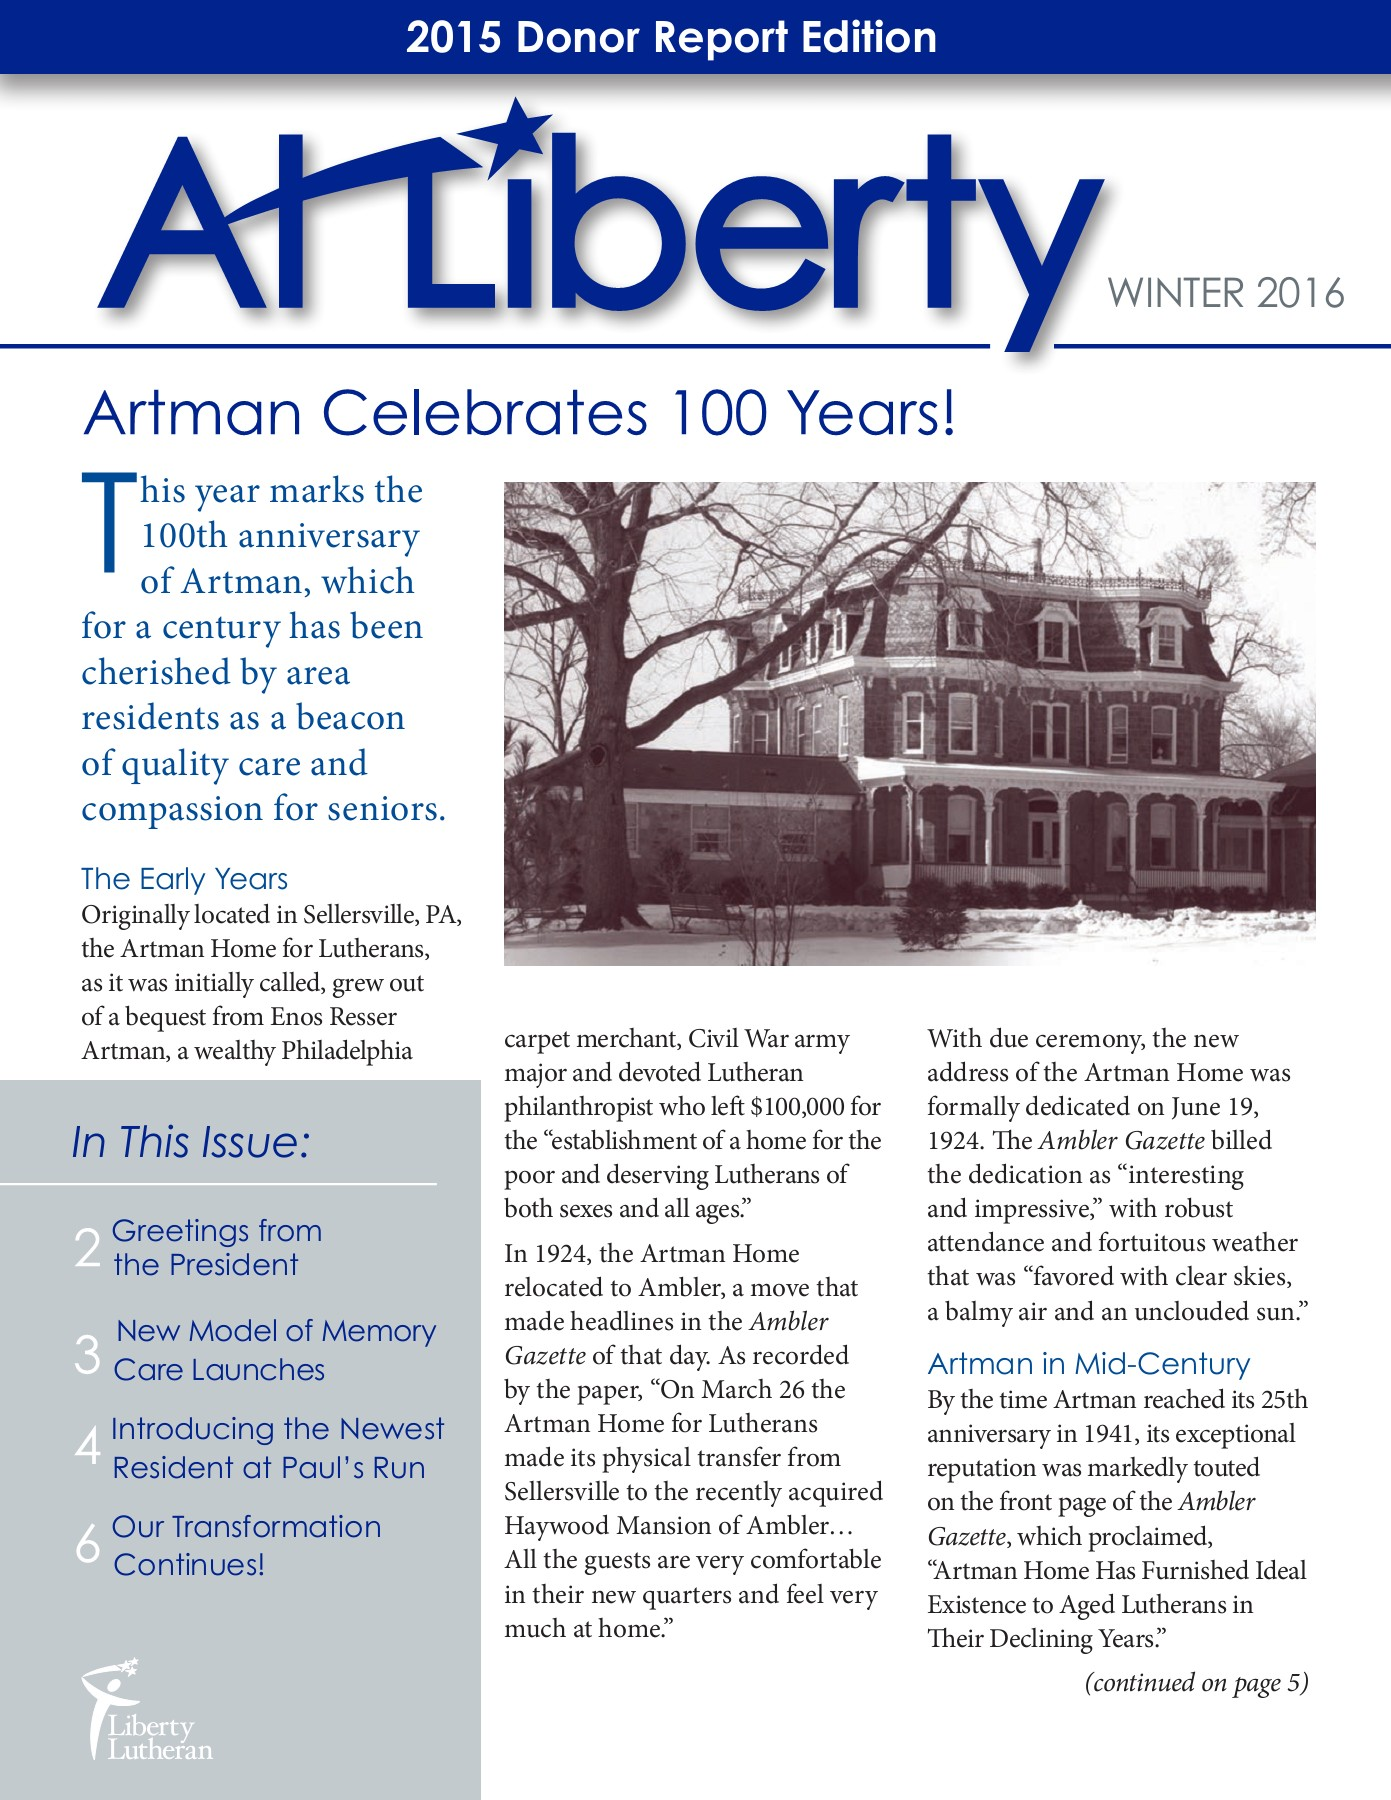 At-Liberty-Winter-2016 Pages 1 - 20 - Text Version | AnyFlip